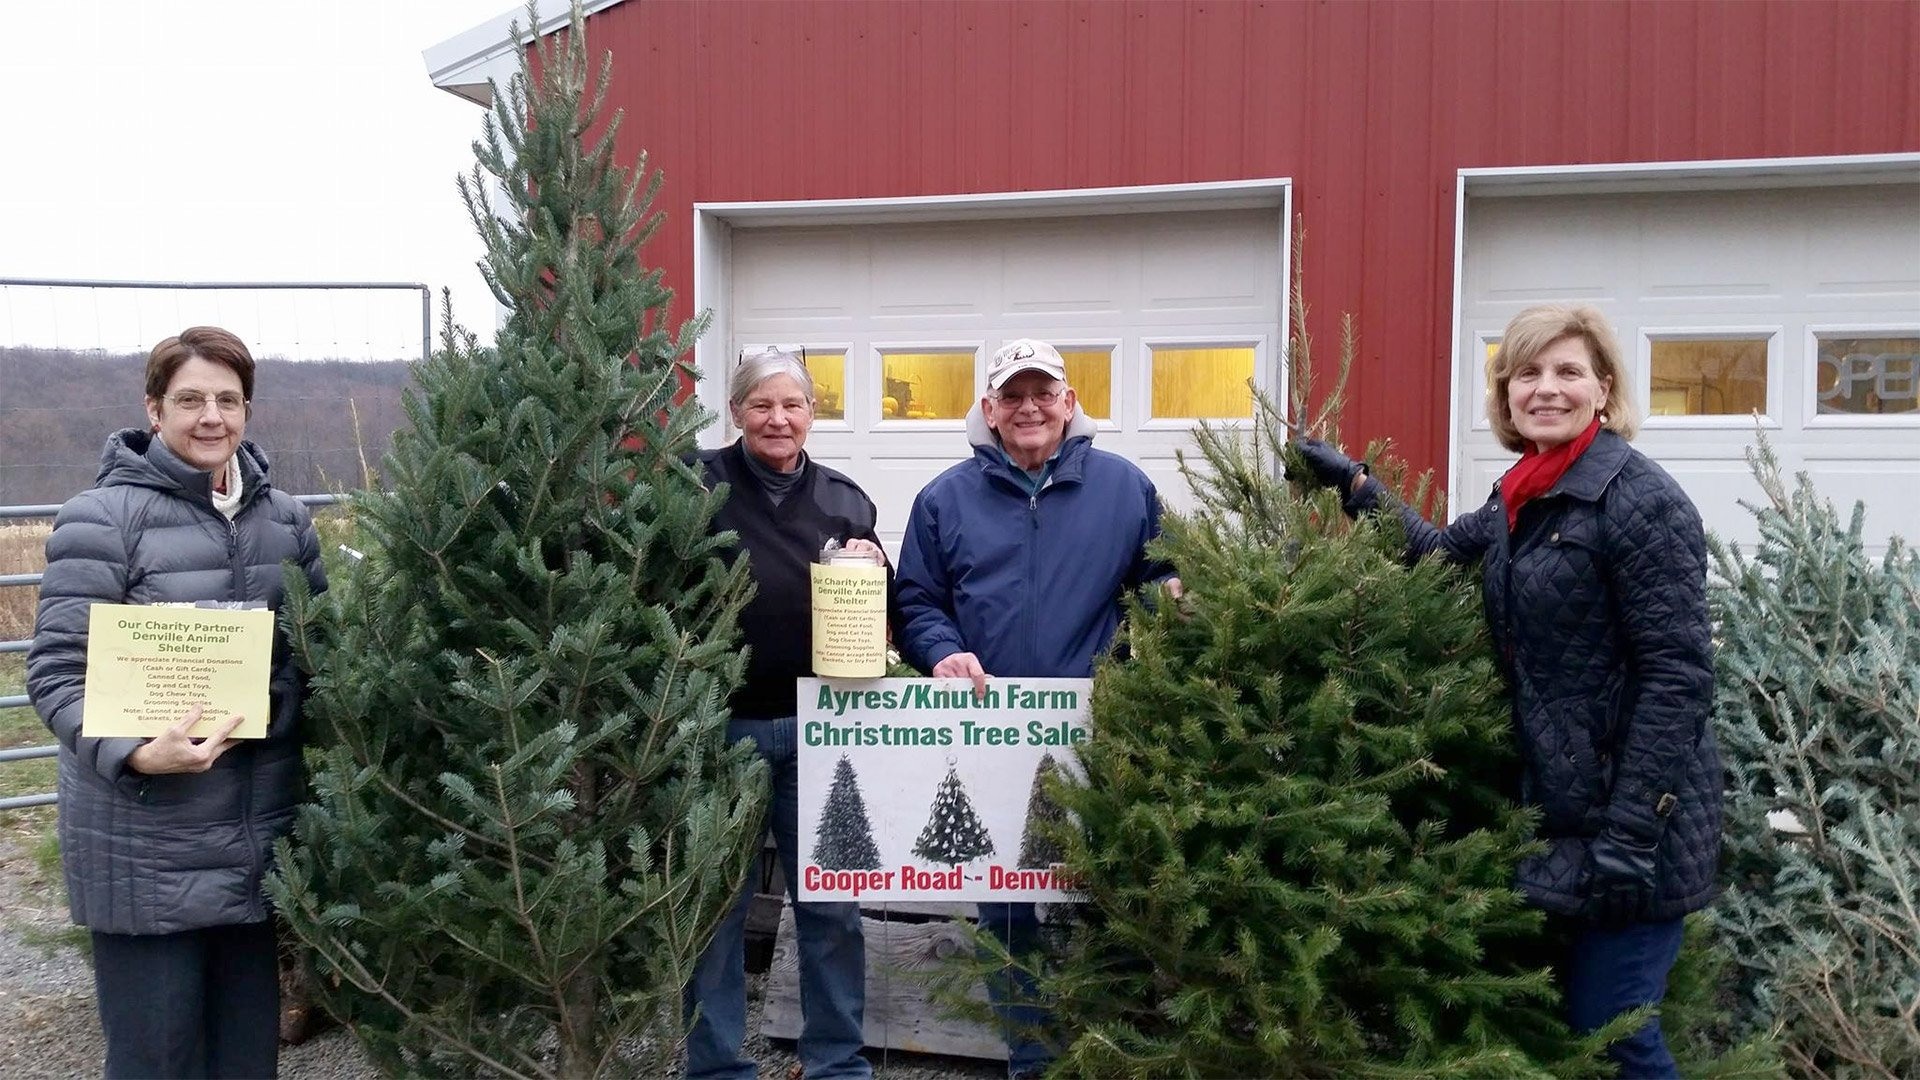 Annual Tree Sale fundraiser at the Ayres/Knuth Farm